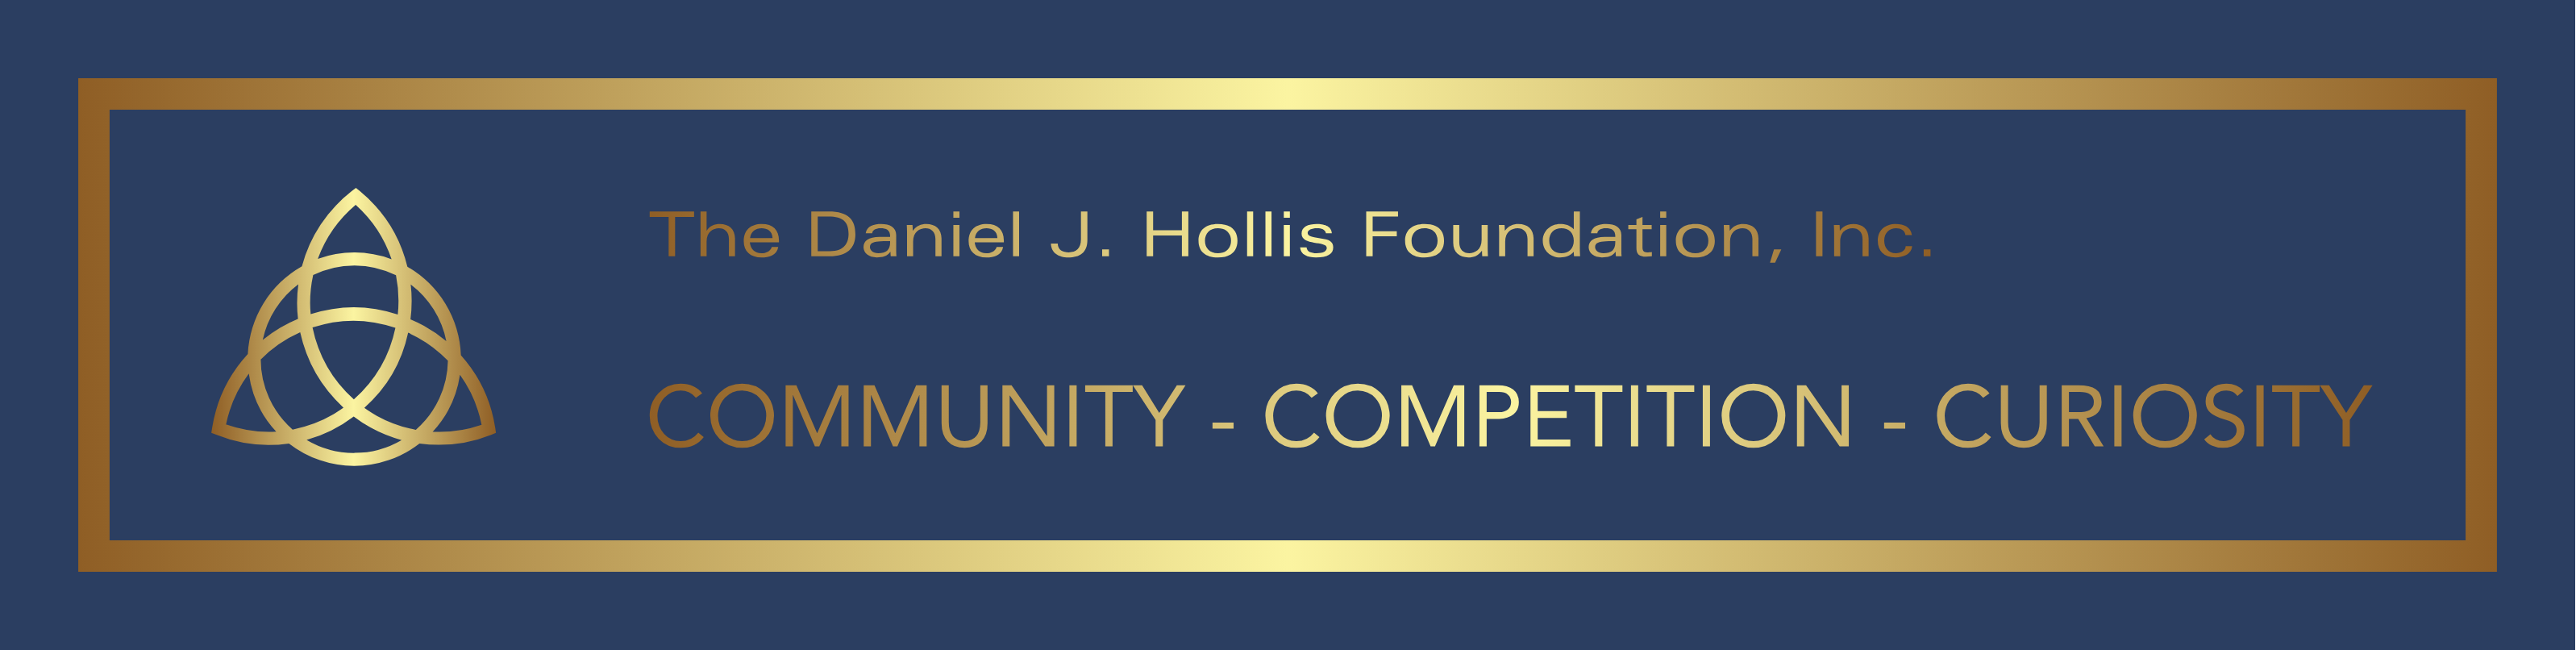 The Daniel J. Hollis Foundation, Inc.